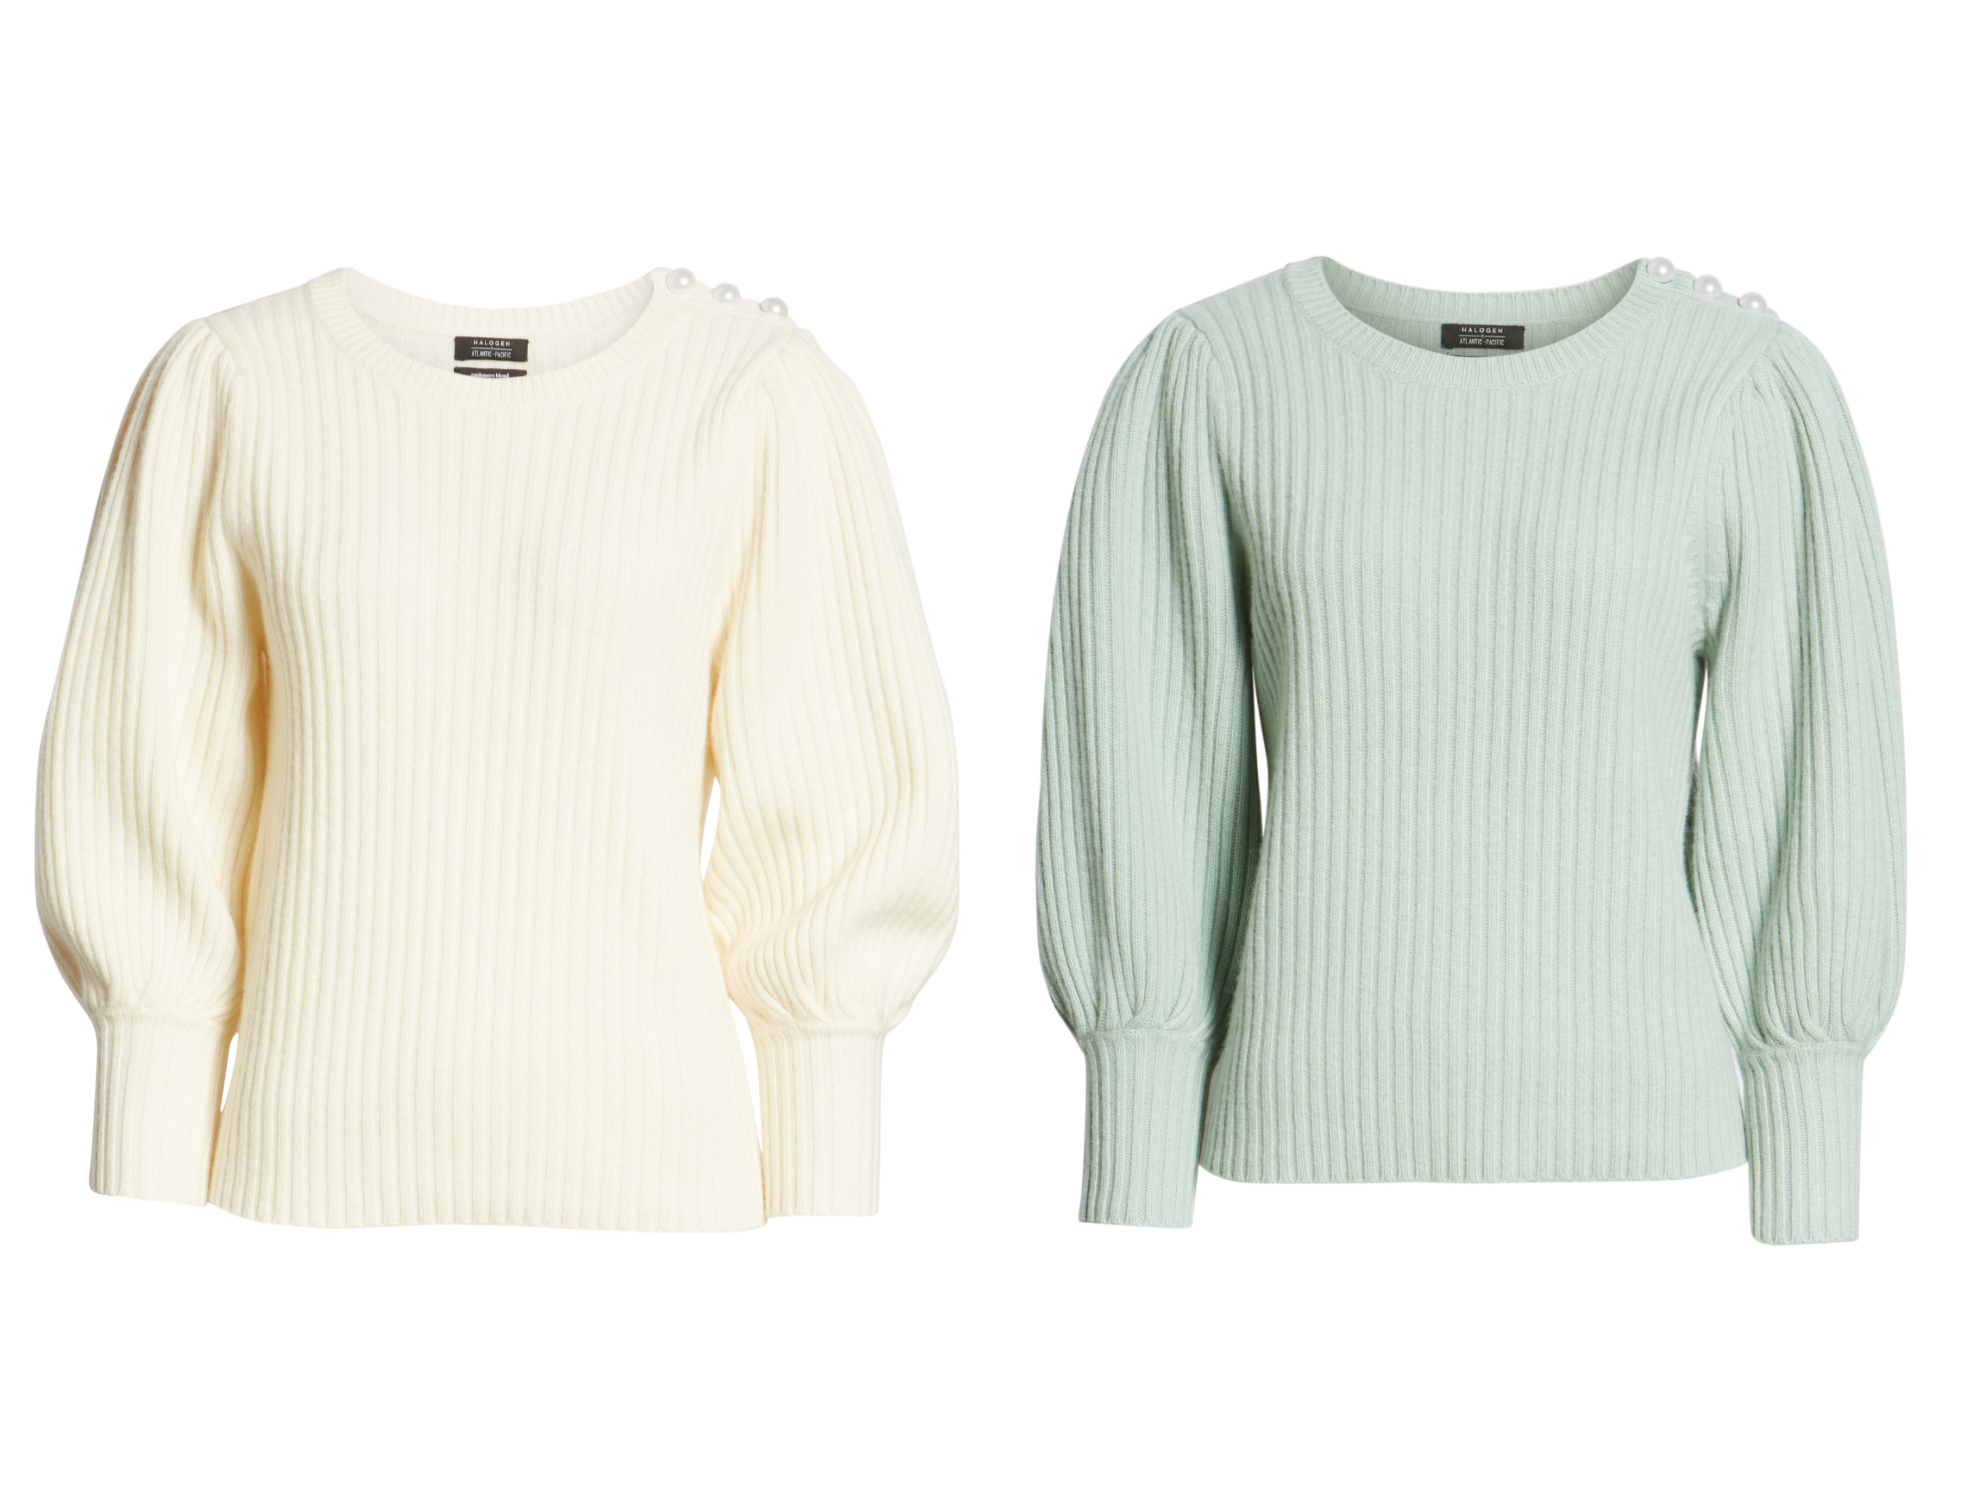 Atlantic_Pacific_Halogen_nordstrom_blair_eadie_fashion_blogger_capsule_collection_fall_october_2018_winter_sweater.jpg